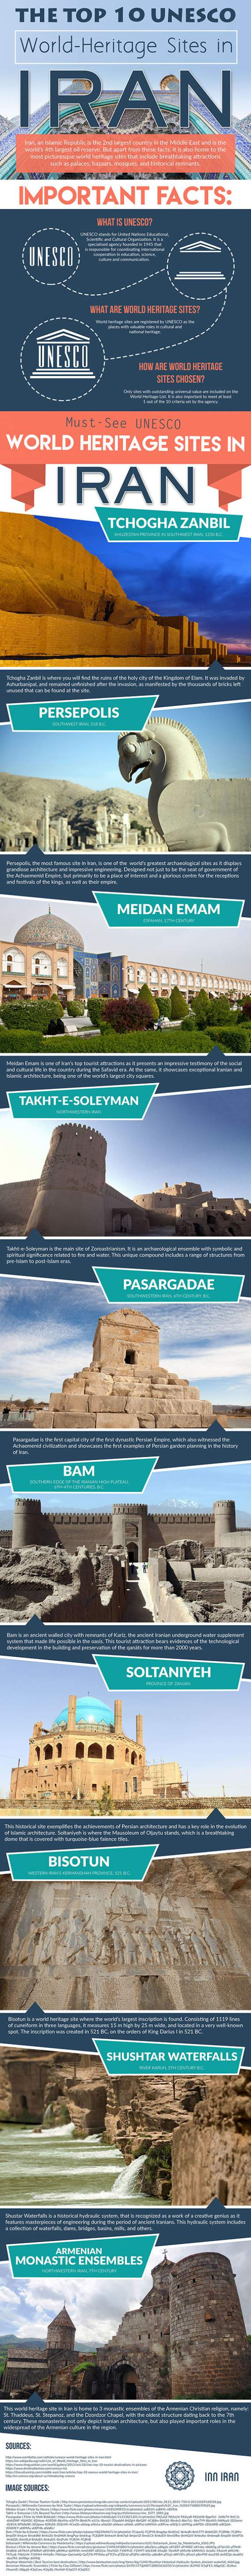 World-Heritage Sites in Iran